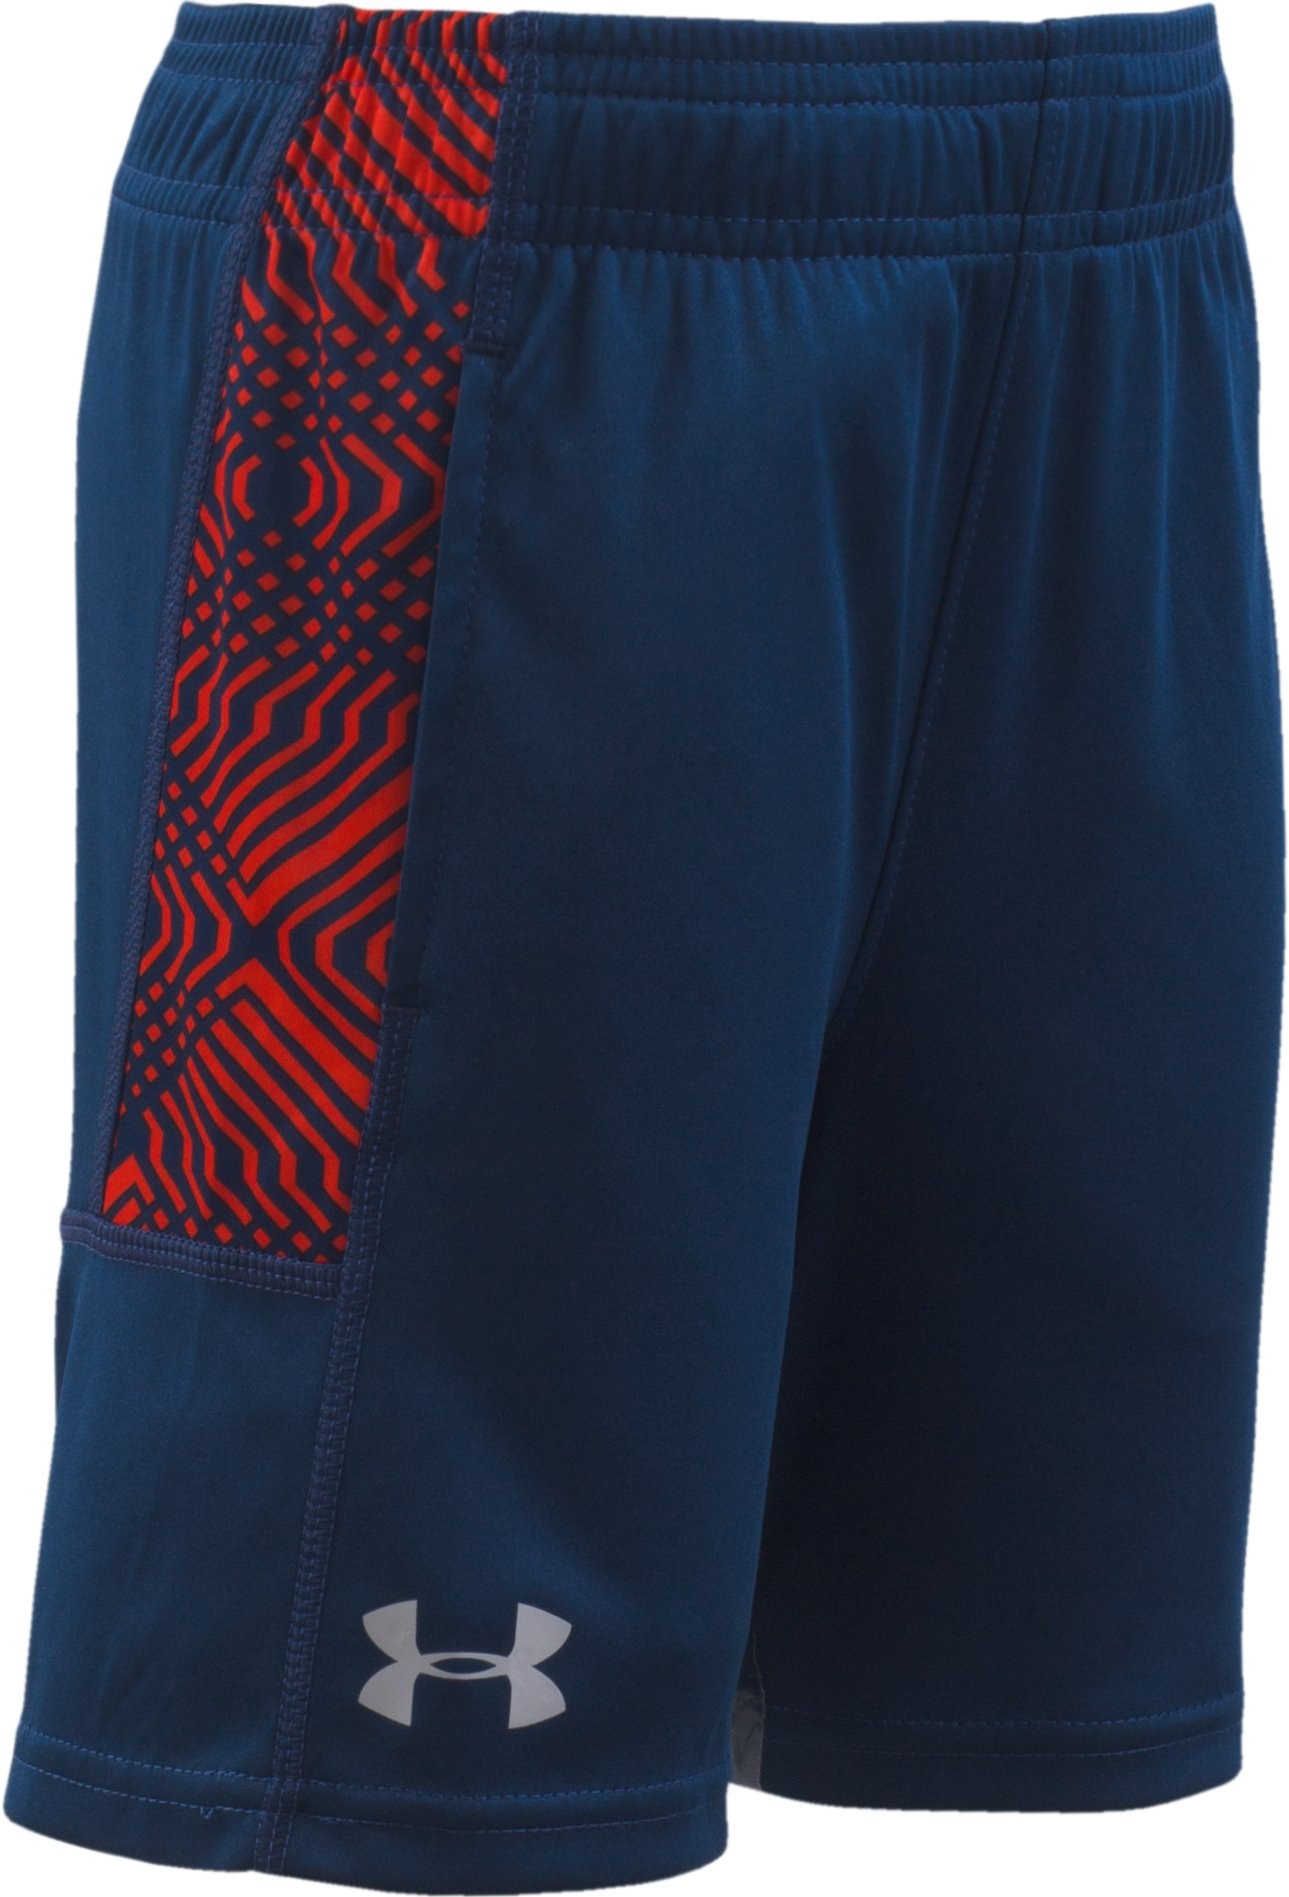 Boys' Toddler UA Midtown Grid Eliminator Shorts, BLACKOUT NAVY